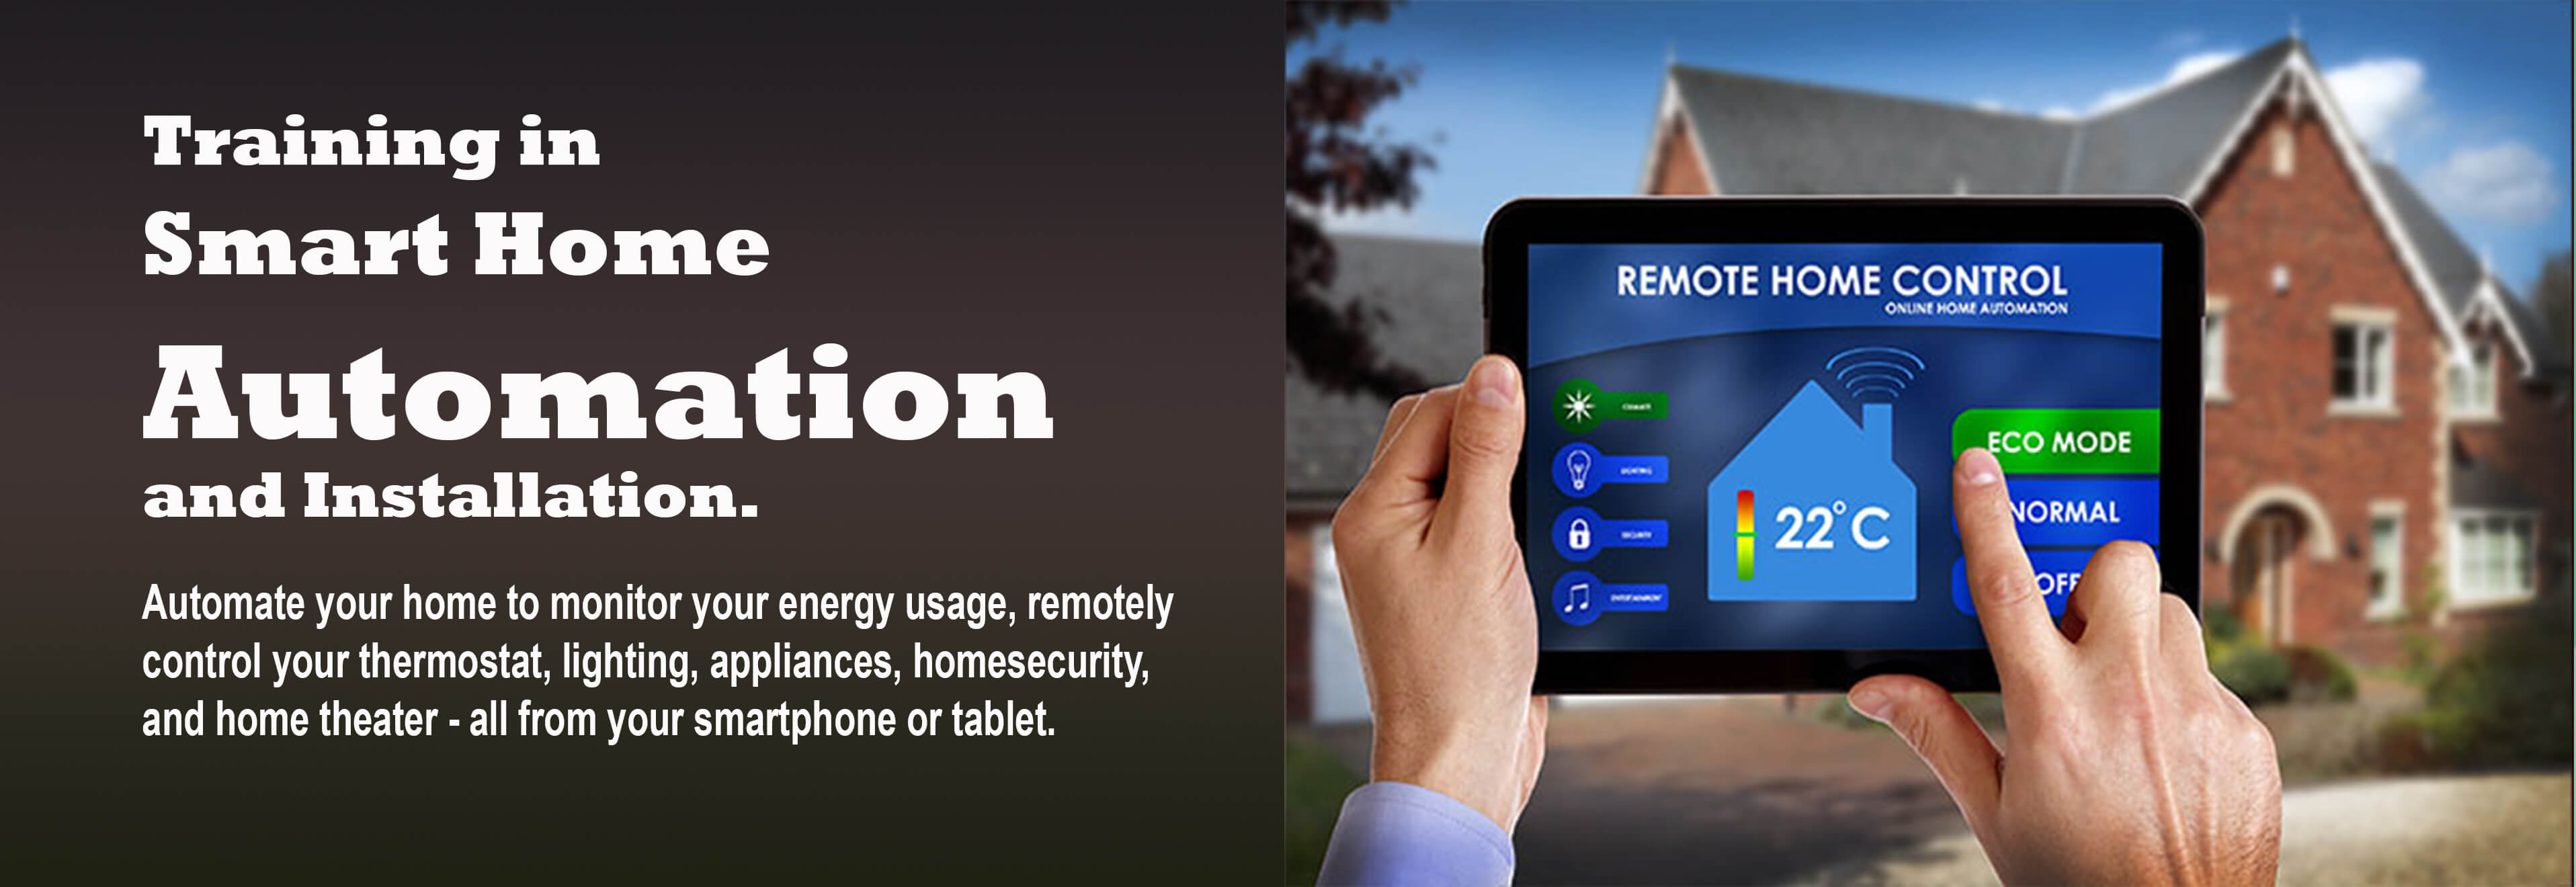 home-automation-training